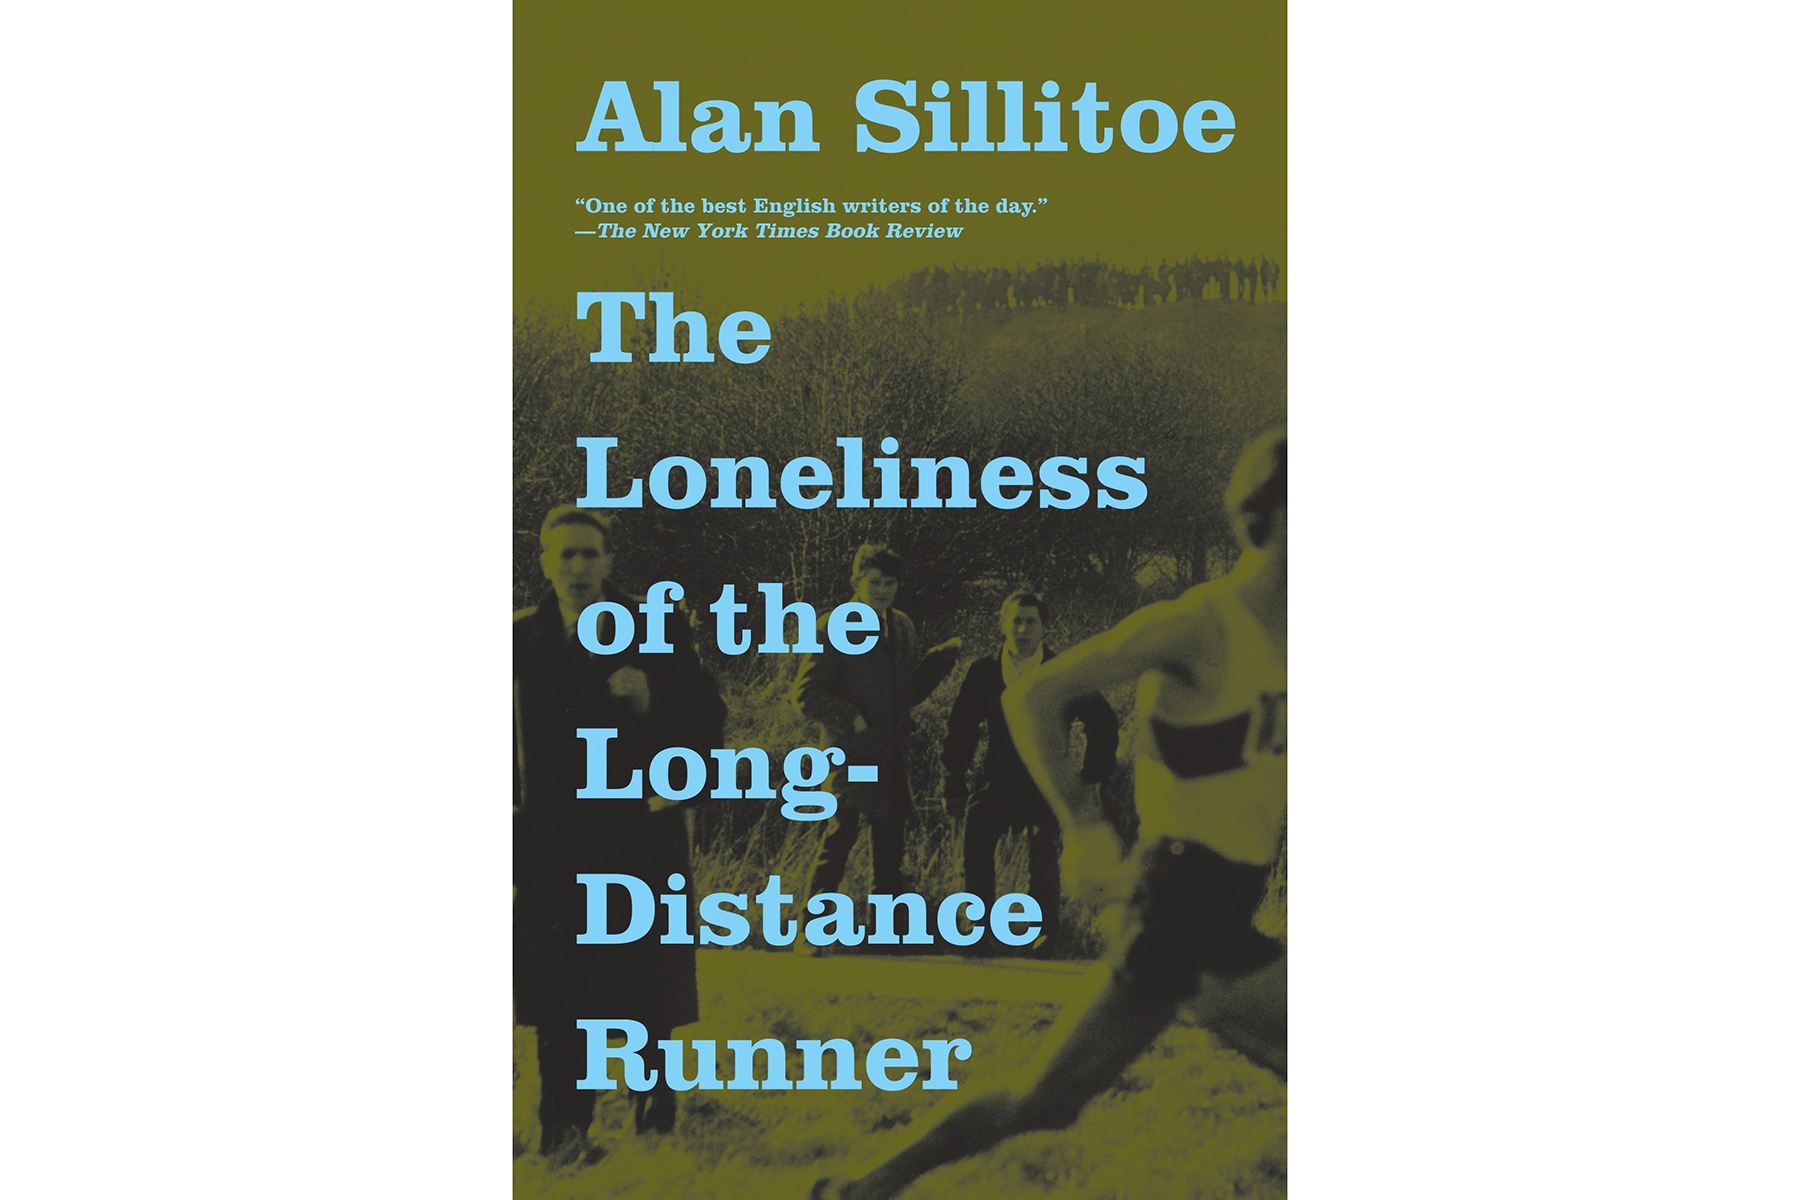 Cover of The Loneliness of the Long-Distance Runner, by Alan Sillitoe